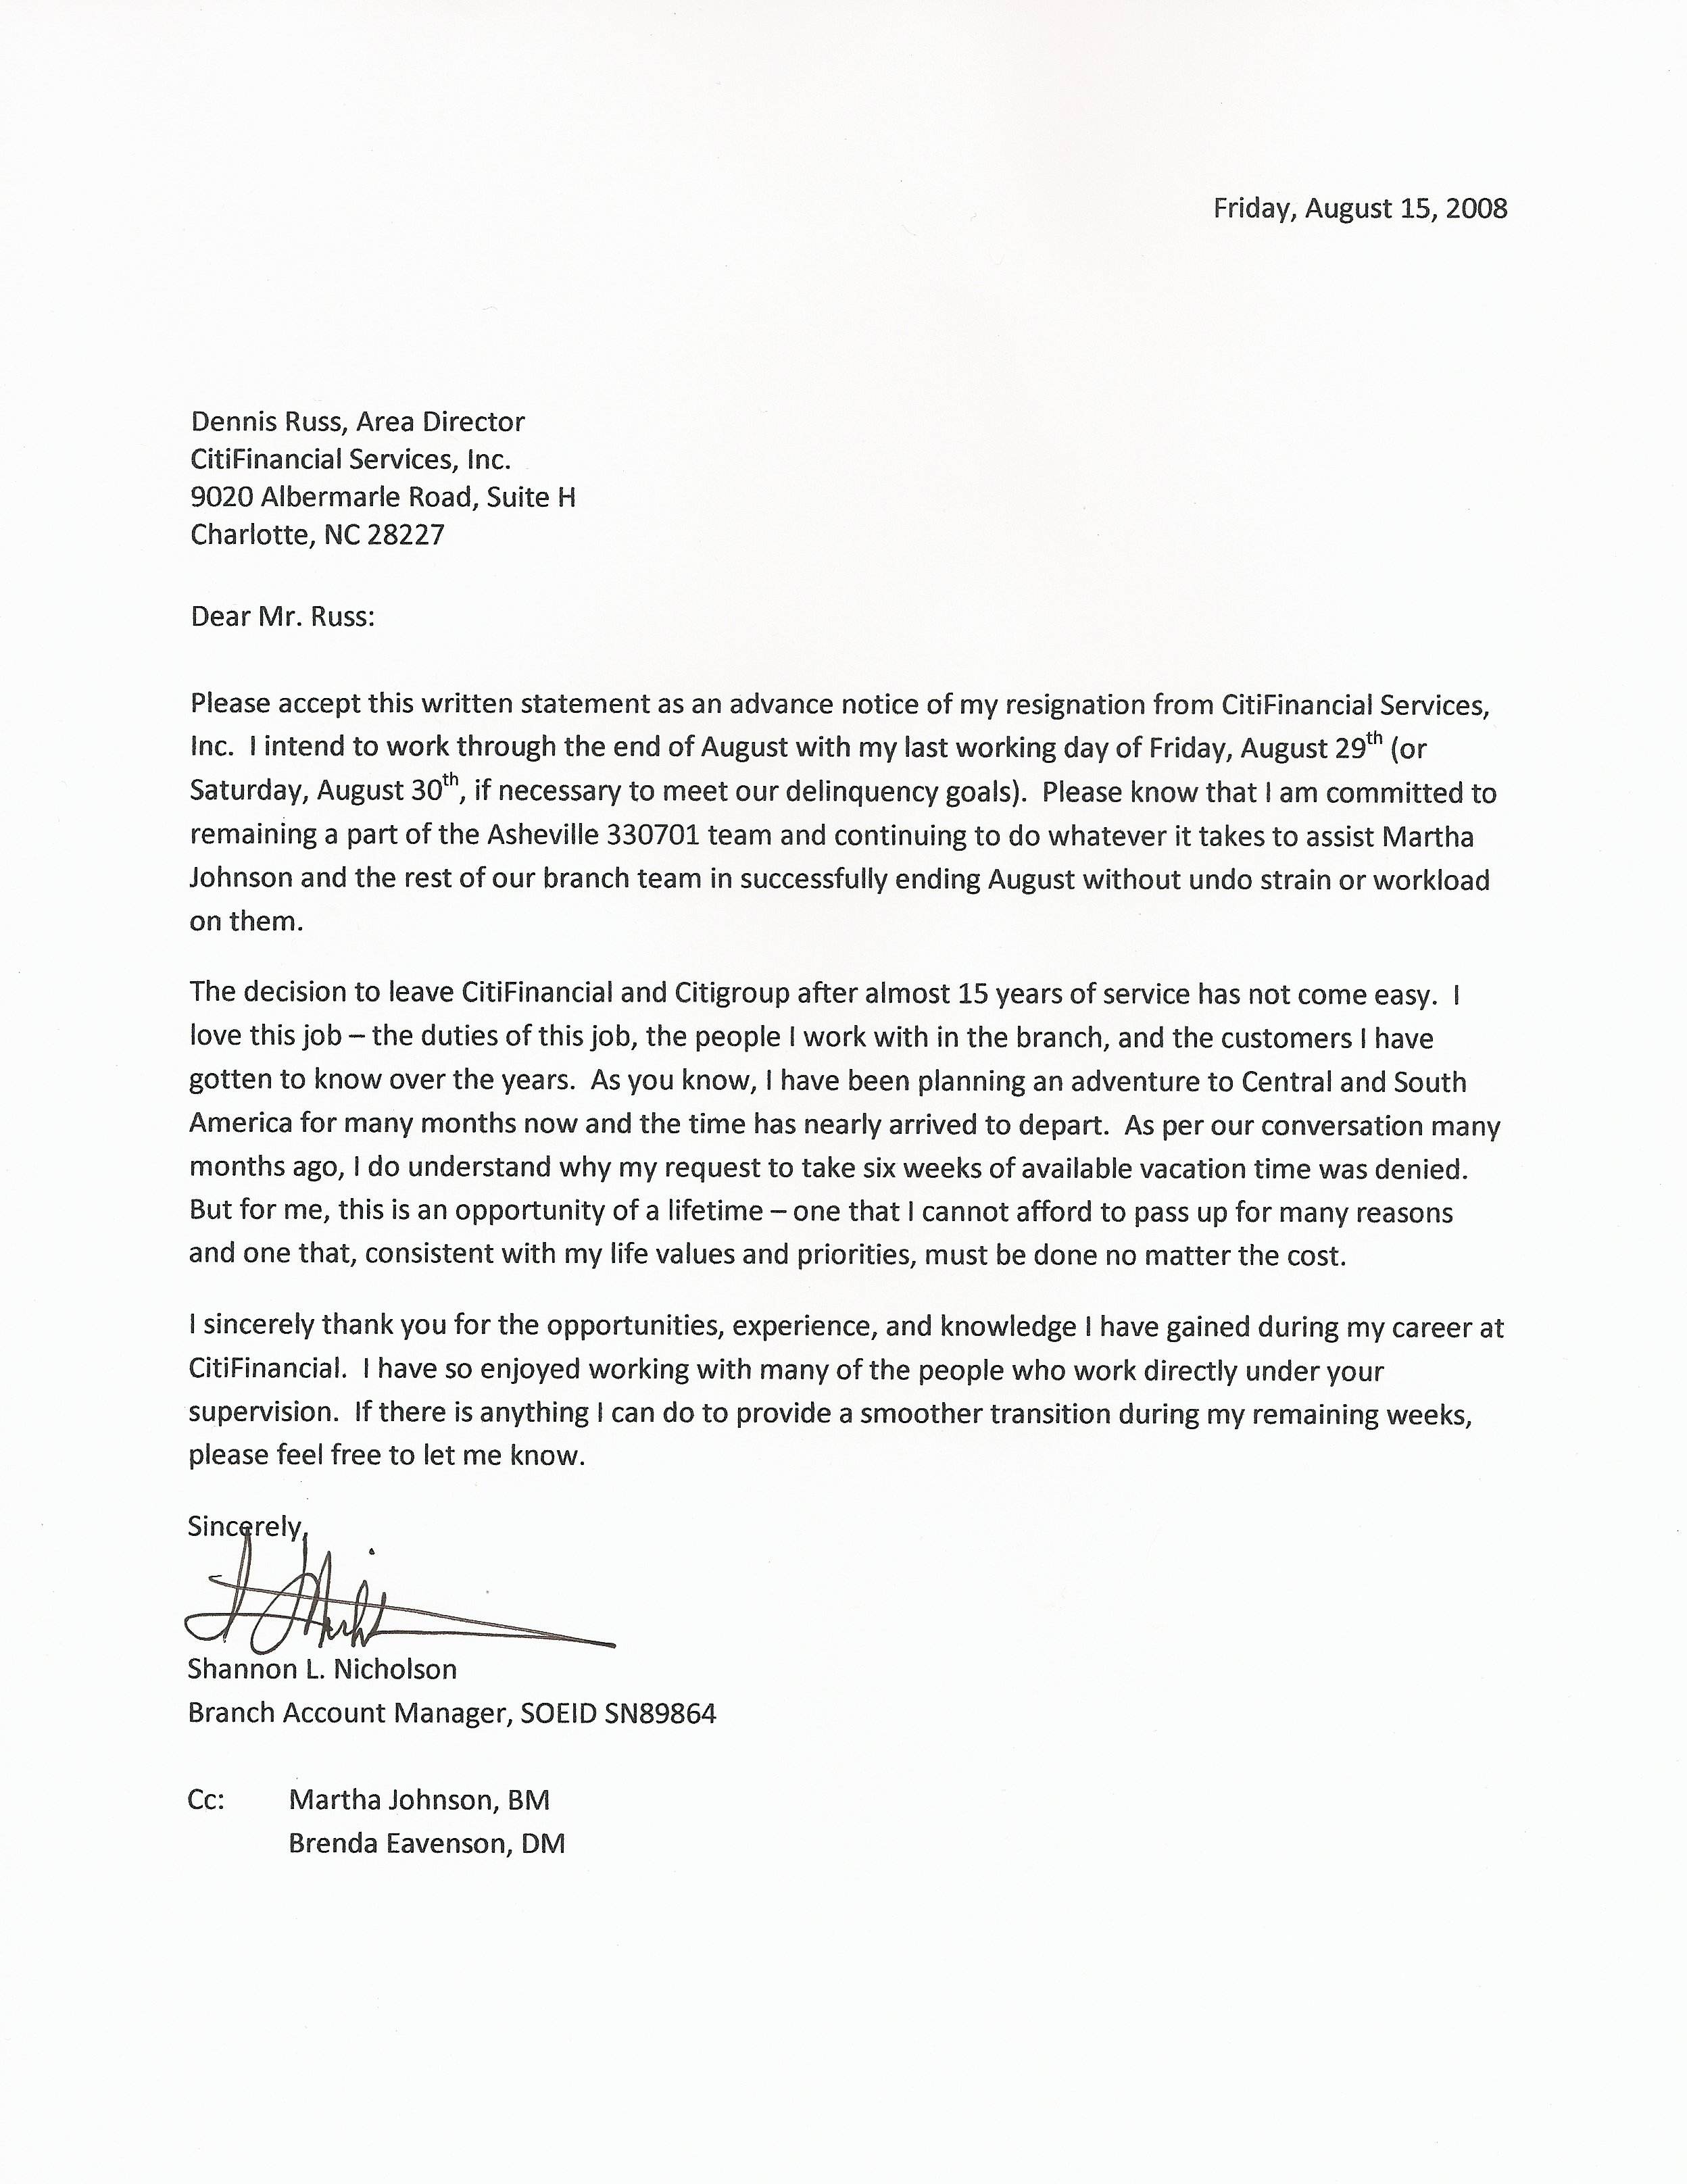 resignation letter resignation letter sample formal resignation letter ...